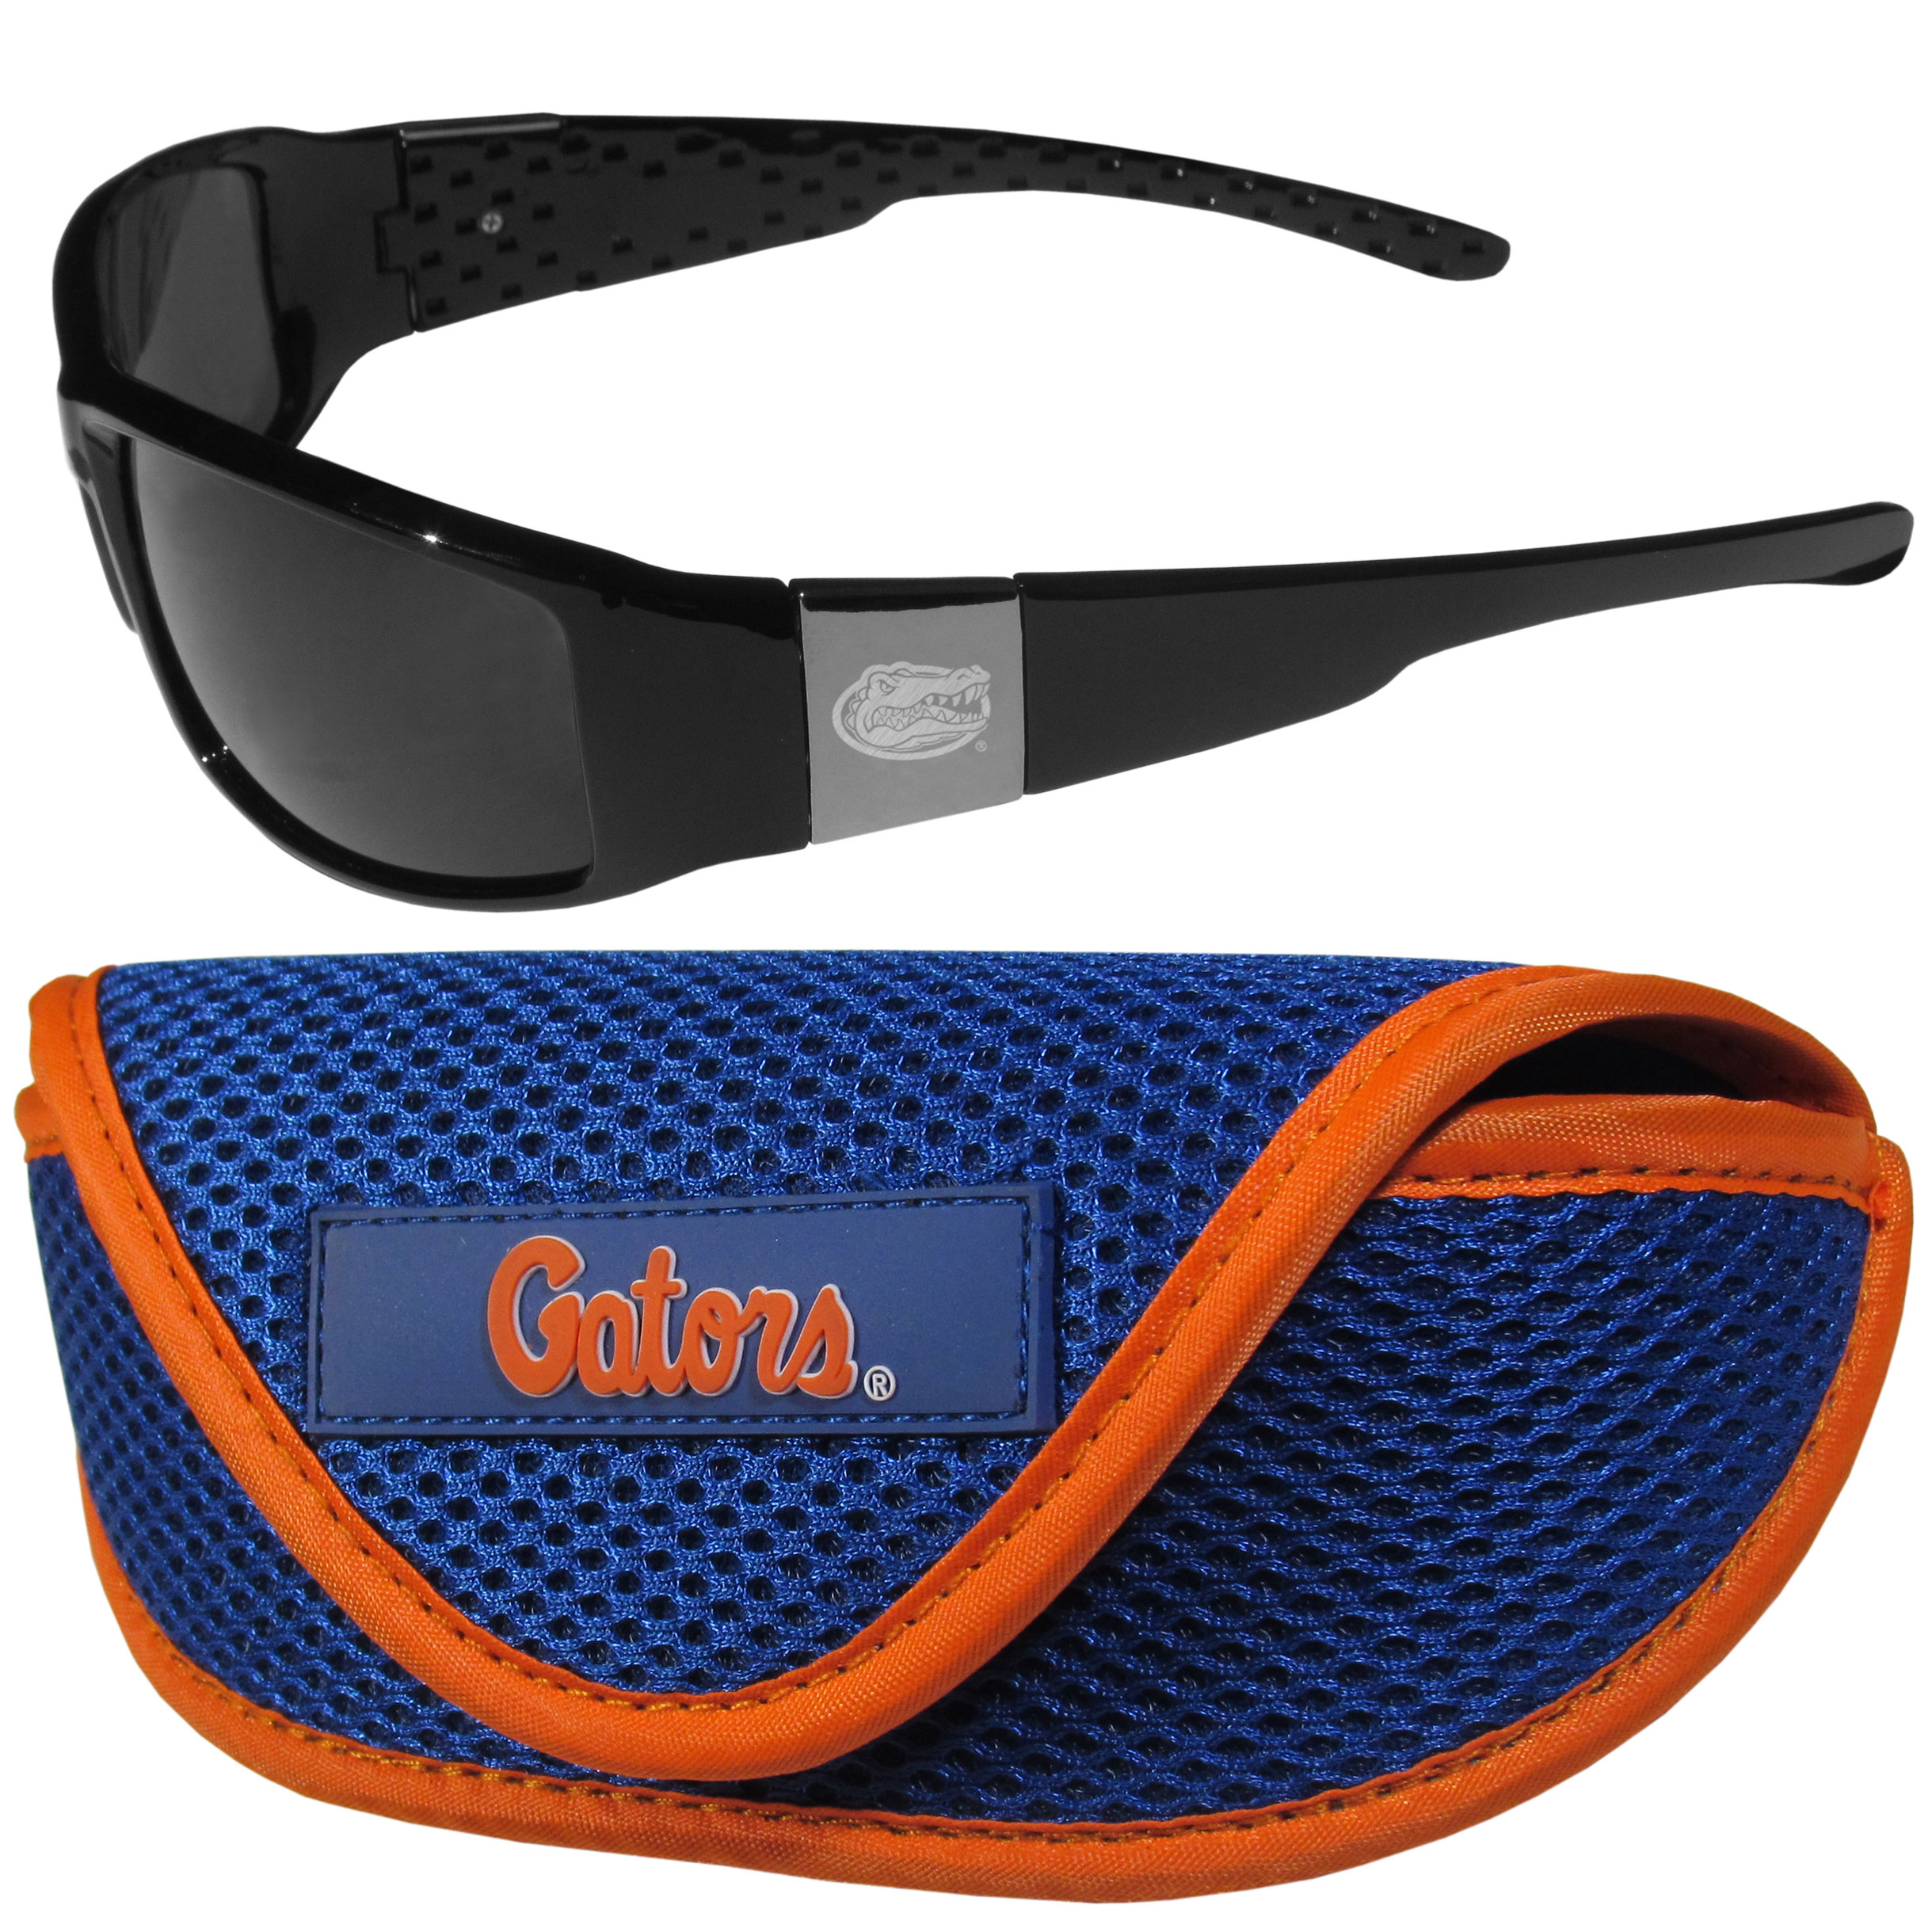 Florida Gators Chrome Wrap Sunglasses and Sport Carrying Case - These designer inspired frames have a sleek look in all black with high-polish chrome Florida Gators shields on each arm with an etched logo. The shades are perfect any outdoor activity like; golfing, driving, hiking, fishing or cheering on the team at a tailgating event or an at home game day BBQ with a lens rating of 100% UVA/UVB for maximum UV protection. The high-quality frames are as durable as they are fashionable and with their classic look they are perfect fan accessory that can be worn everyday for every occasion. The shades come with a zippered hard shell case to keep your sunglasses safe.